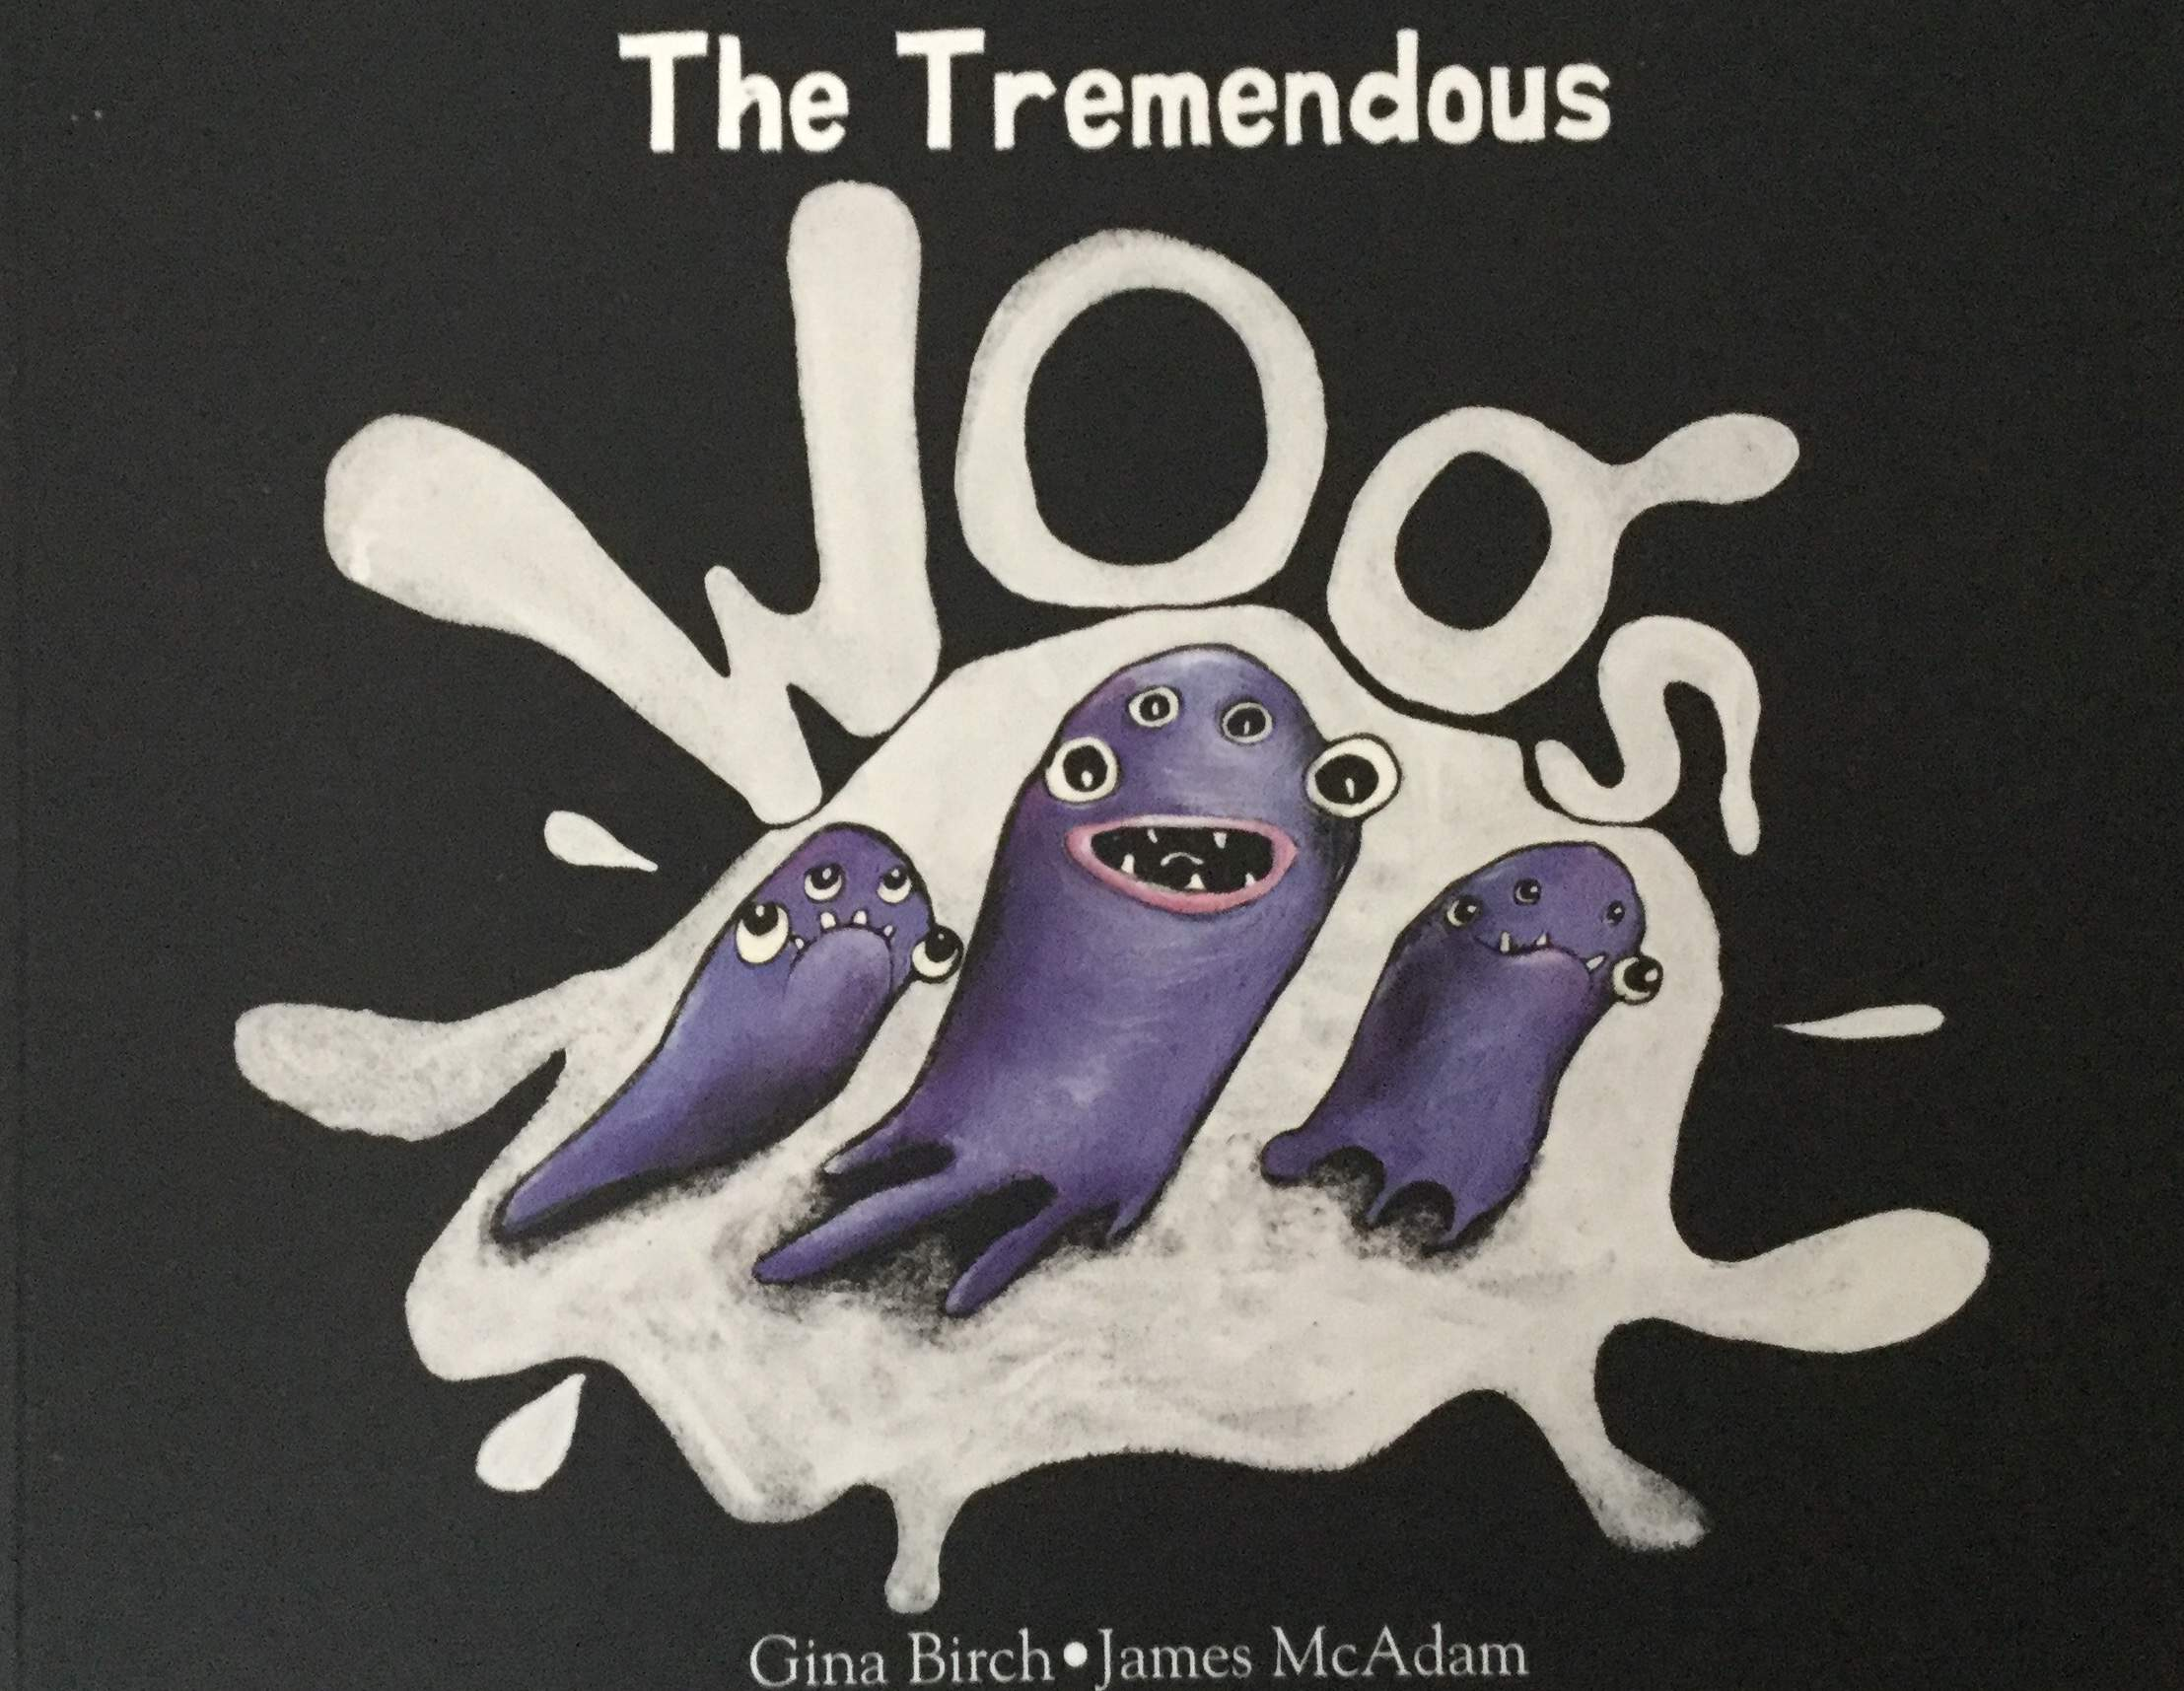 The Tremendous Woos